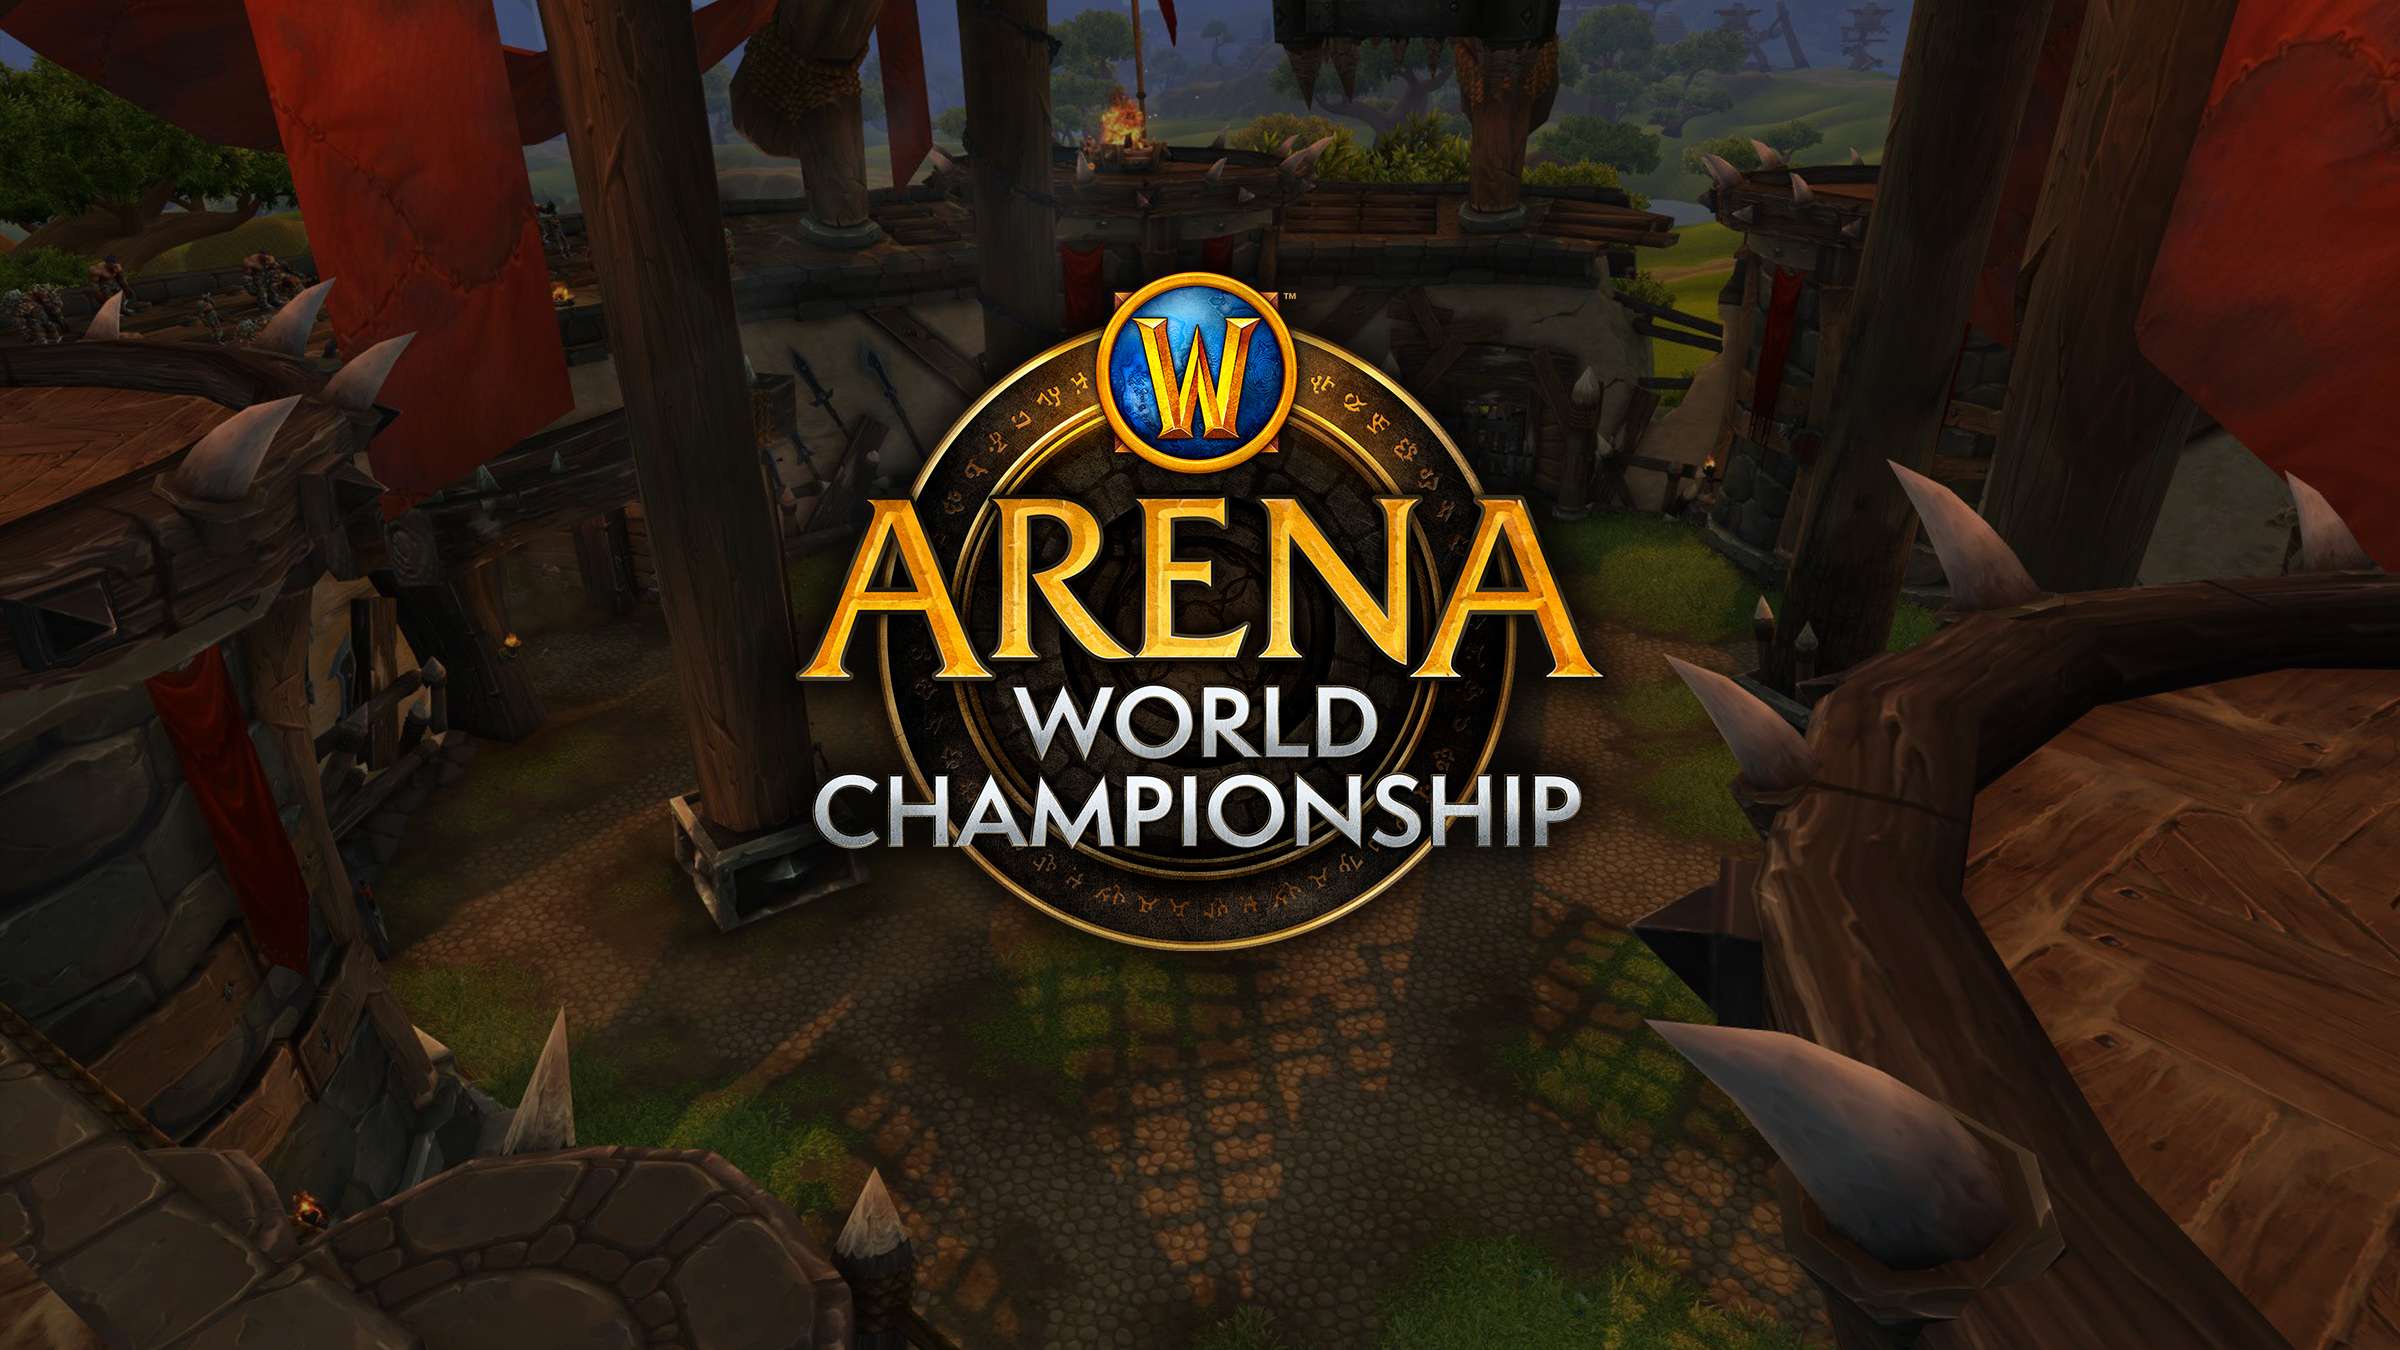 Tune in May 26-27 for the WoW Arena Championship: European Qualifier Cup 2